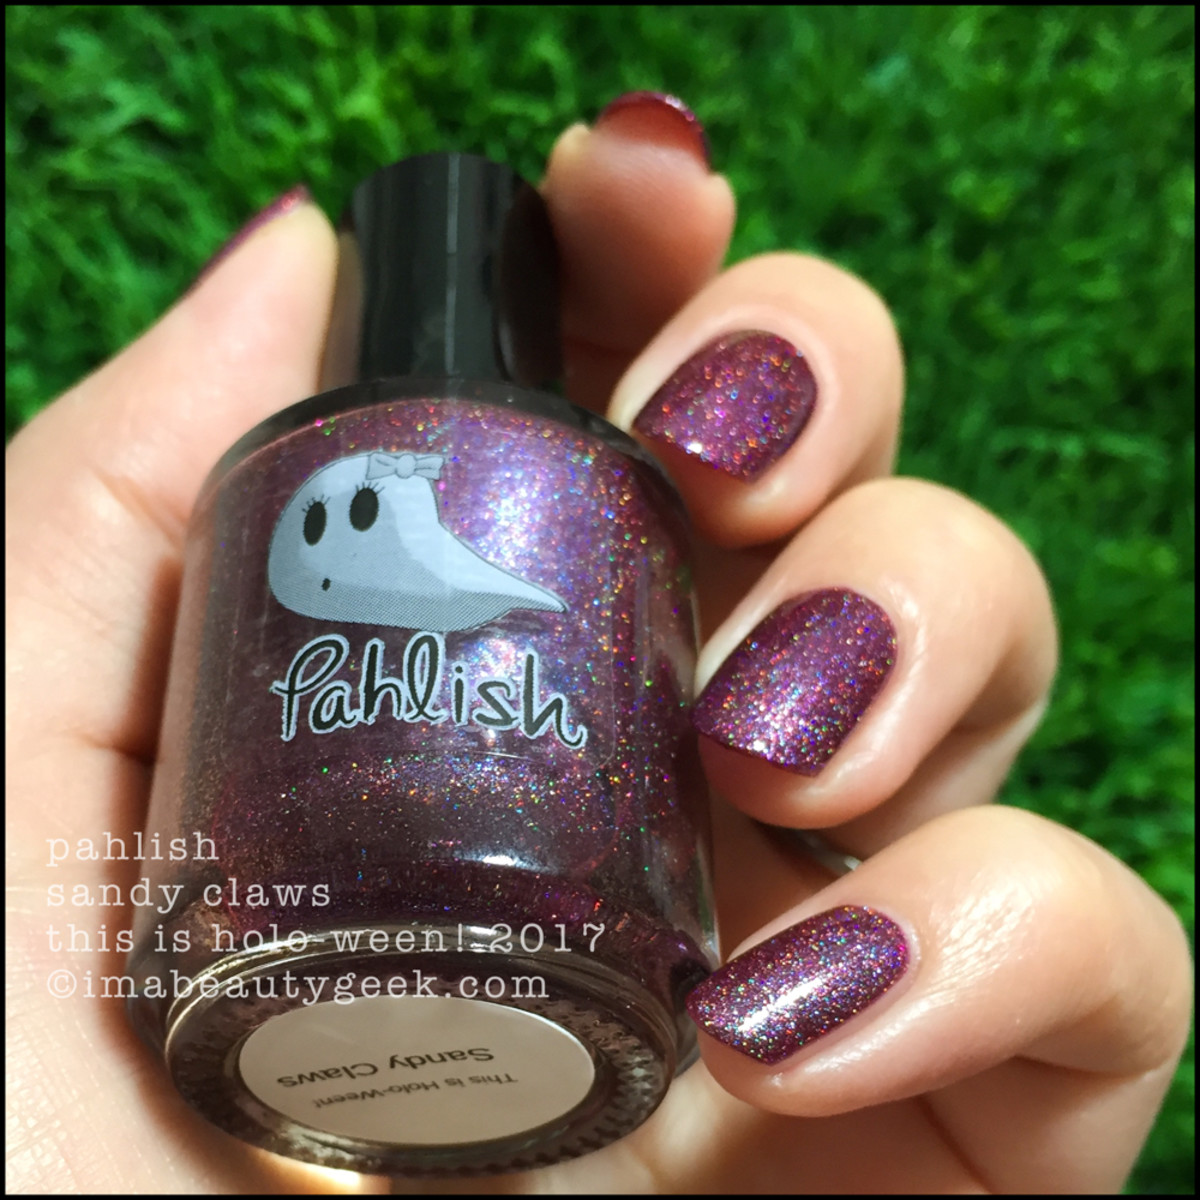 Pahlish Sandy Claws 2 - This is Holo-ween! 2017